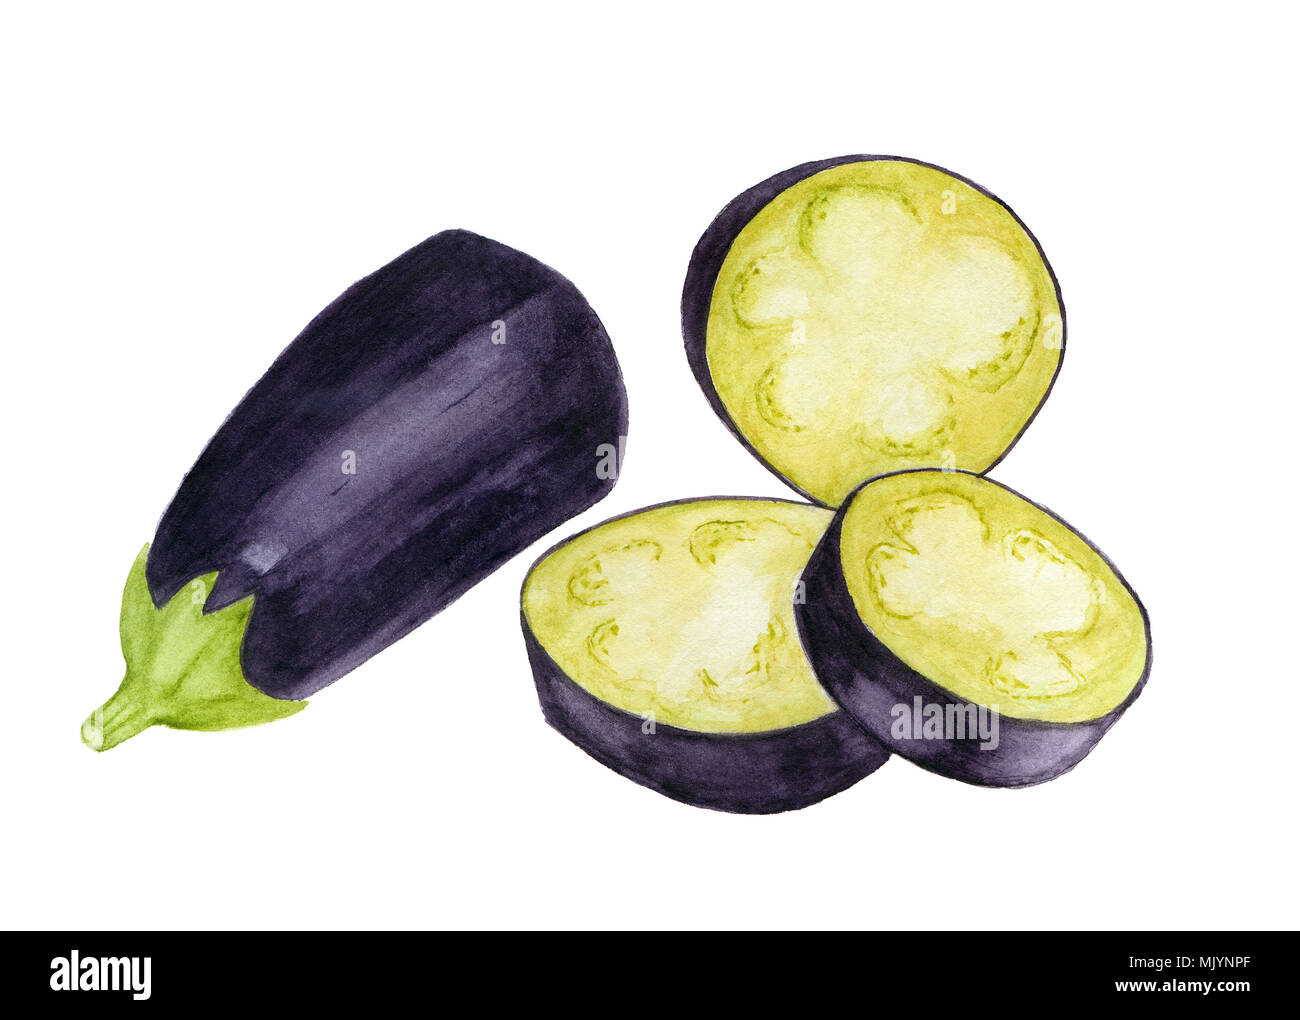 Suite une nouvelle main d'aubergines, d'aquarelle. illustration pour la conception de l'alimentation. Photo Stock